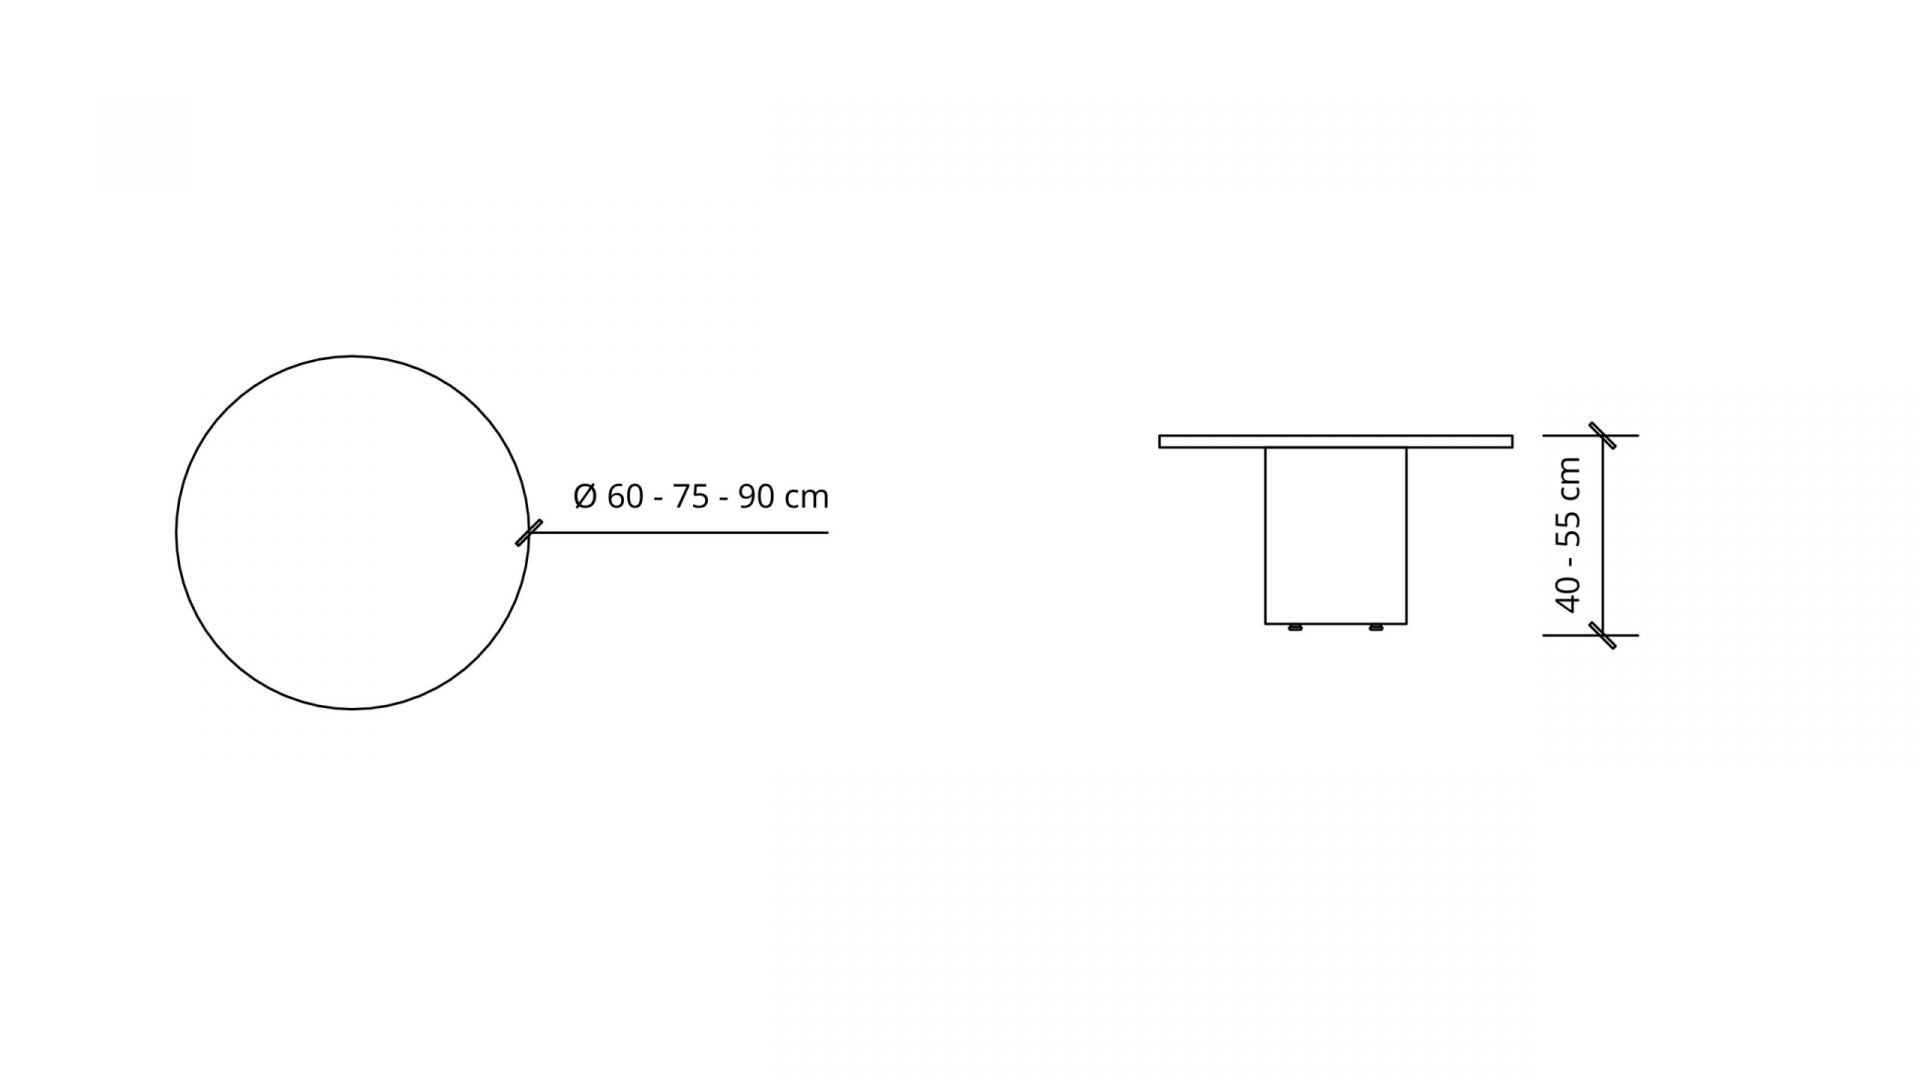 Dimensions of Round Coffee Table 1649